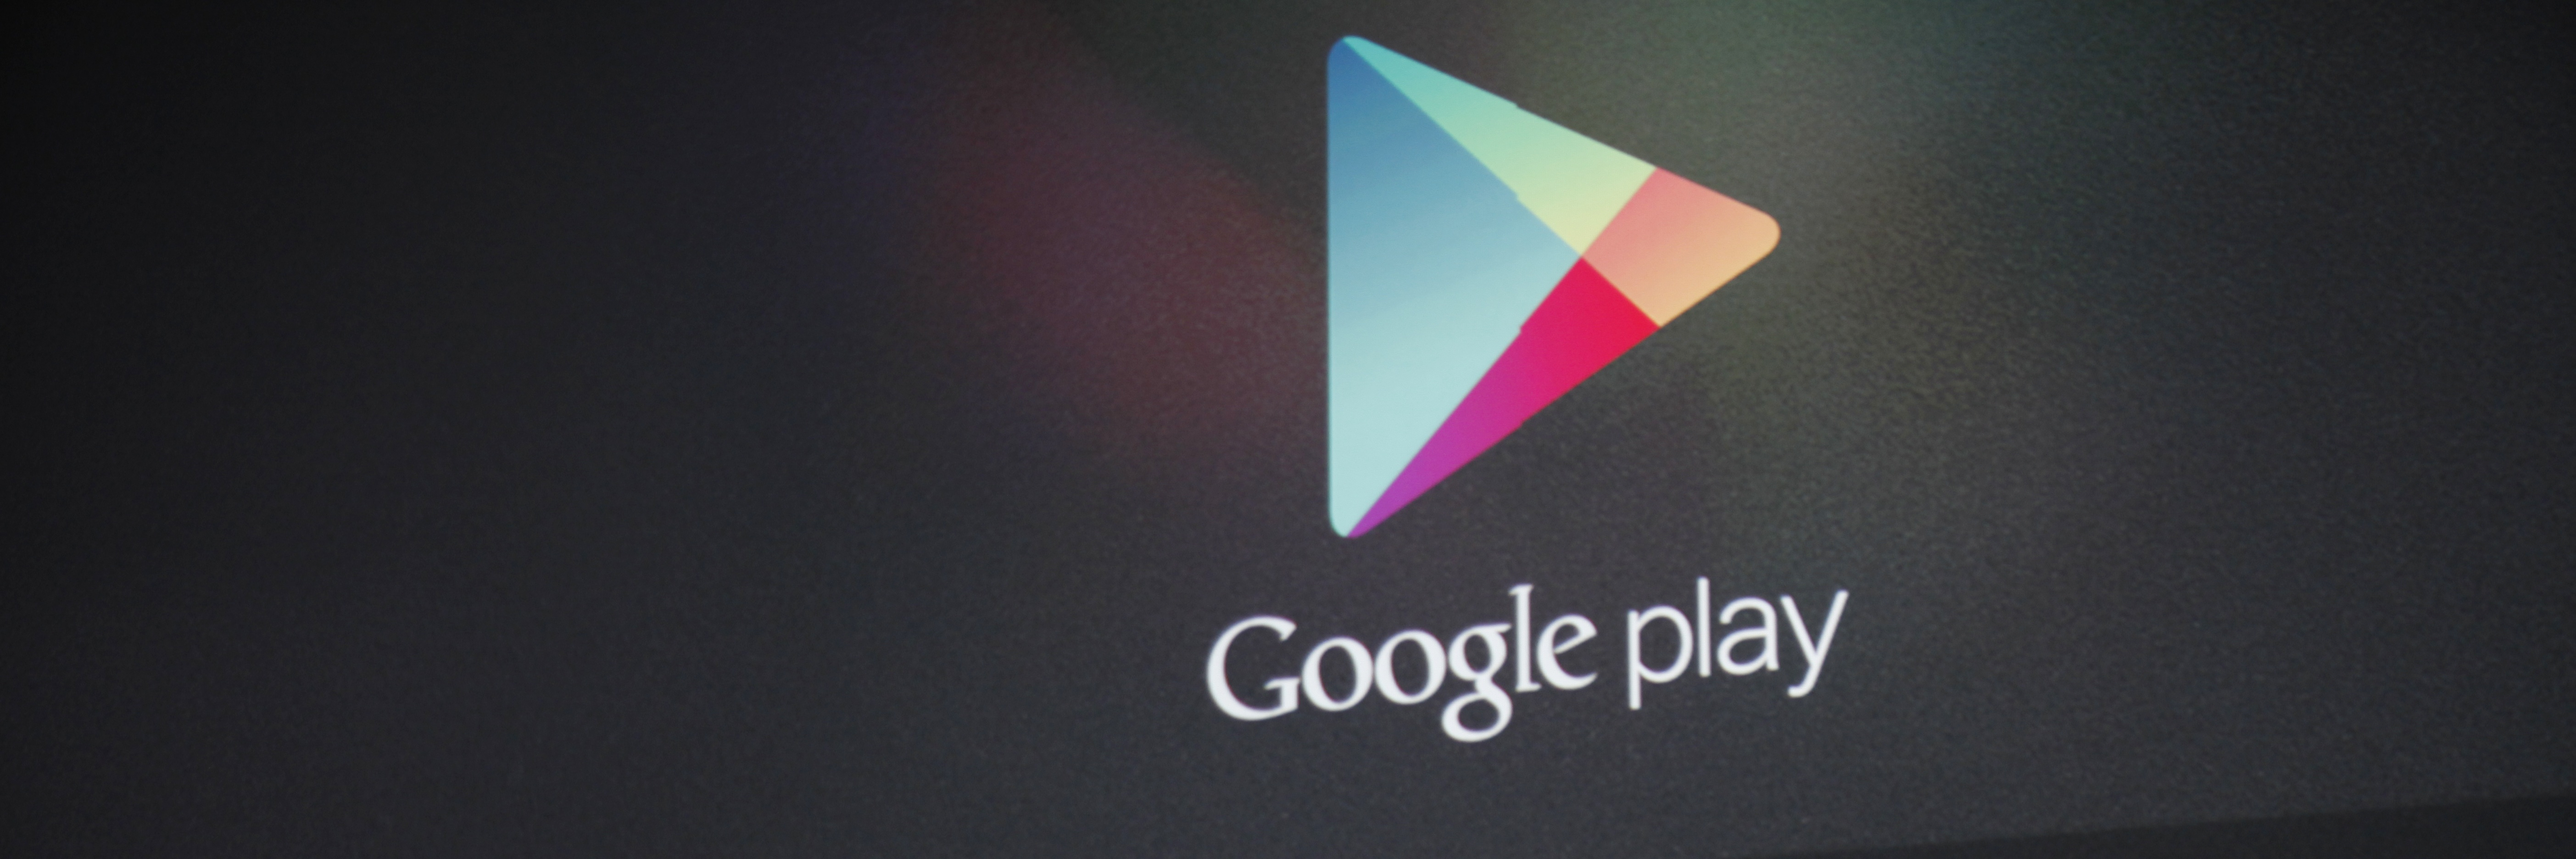 Lessons We Learned From Being Featured in the Google Play Store